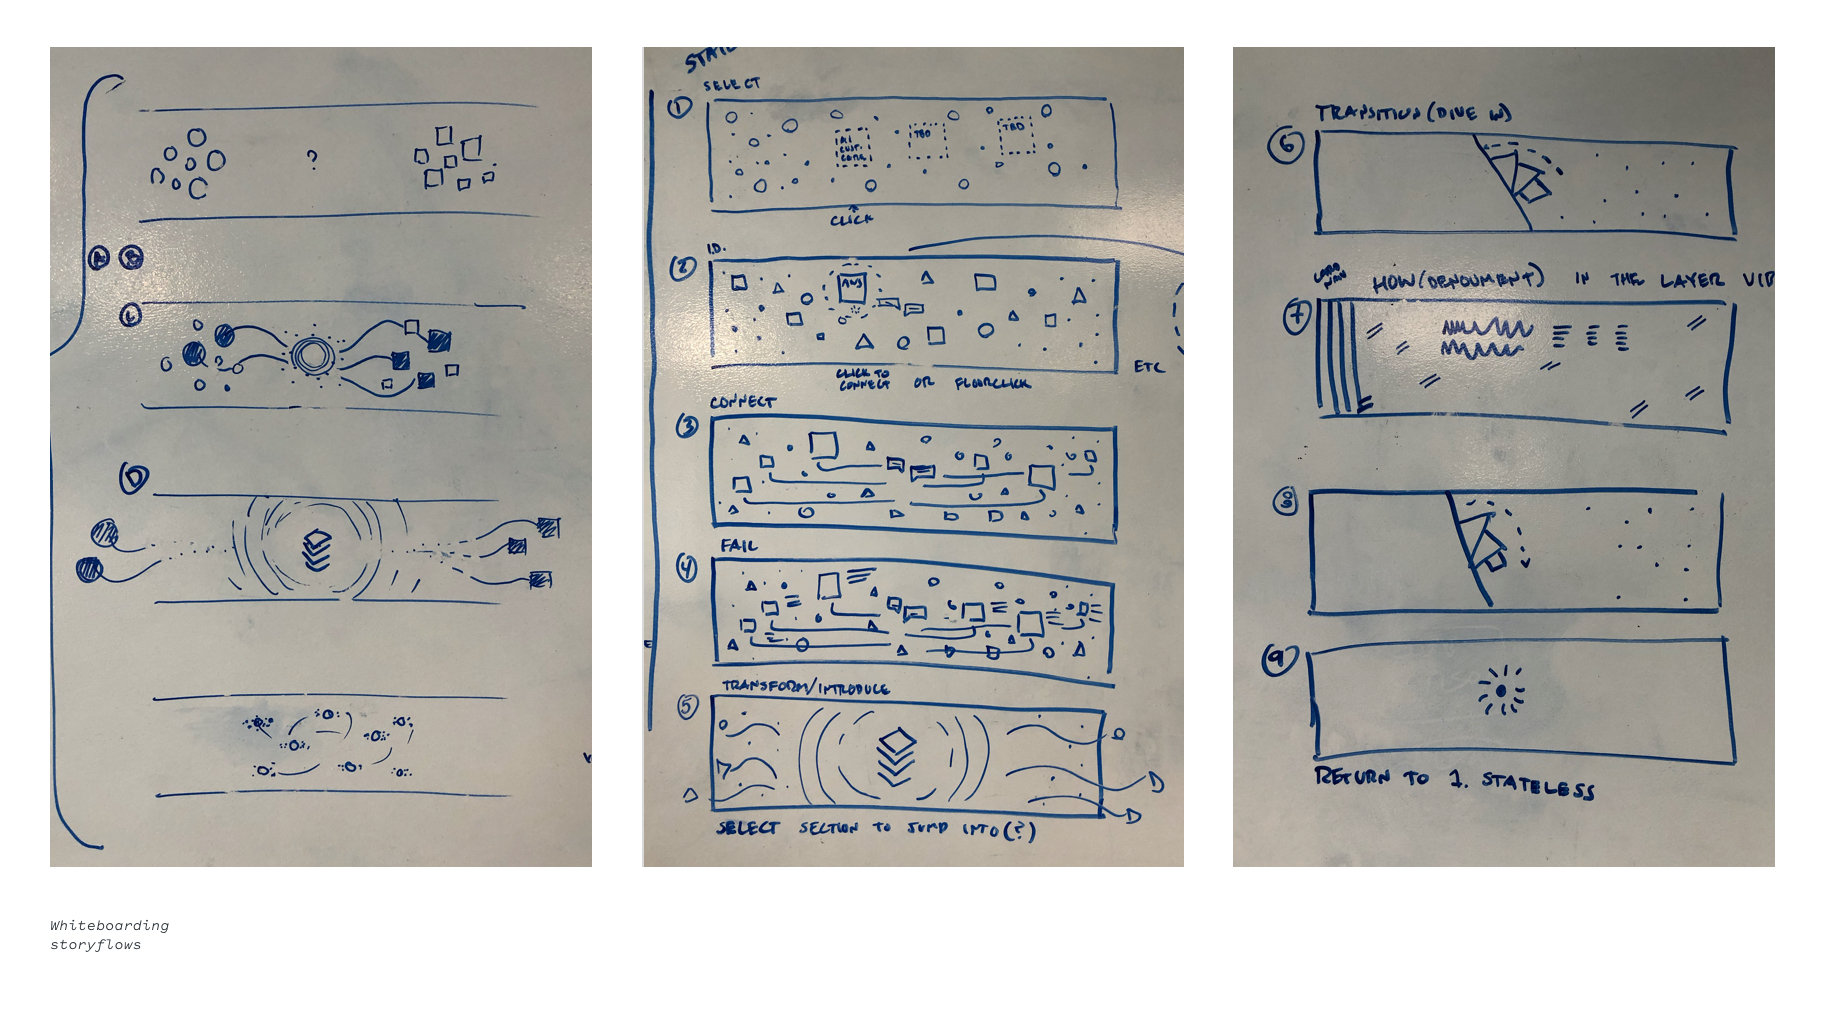 Experience storyboards